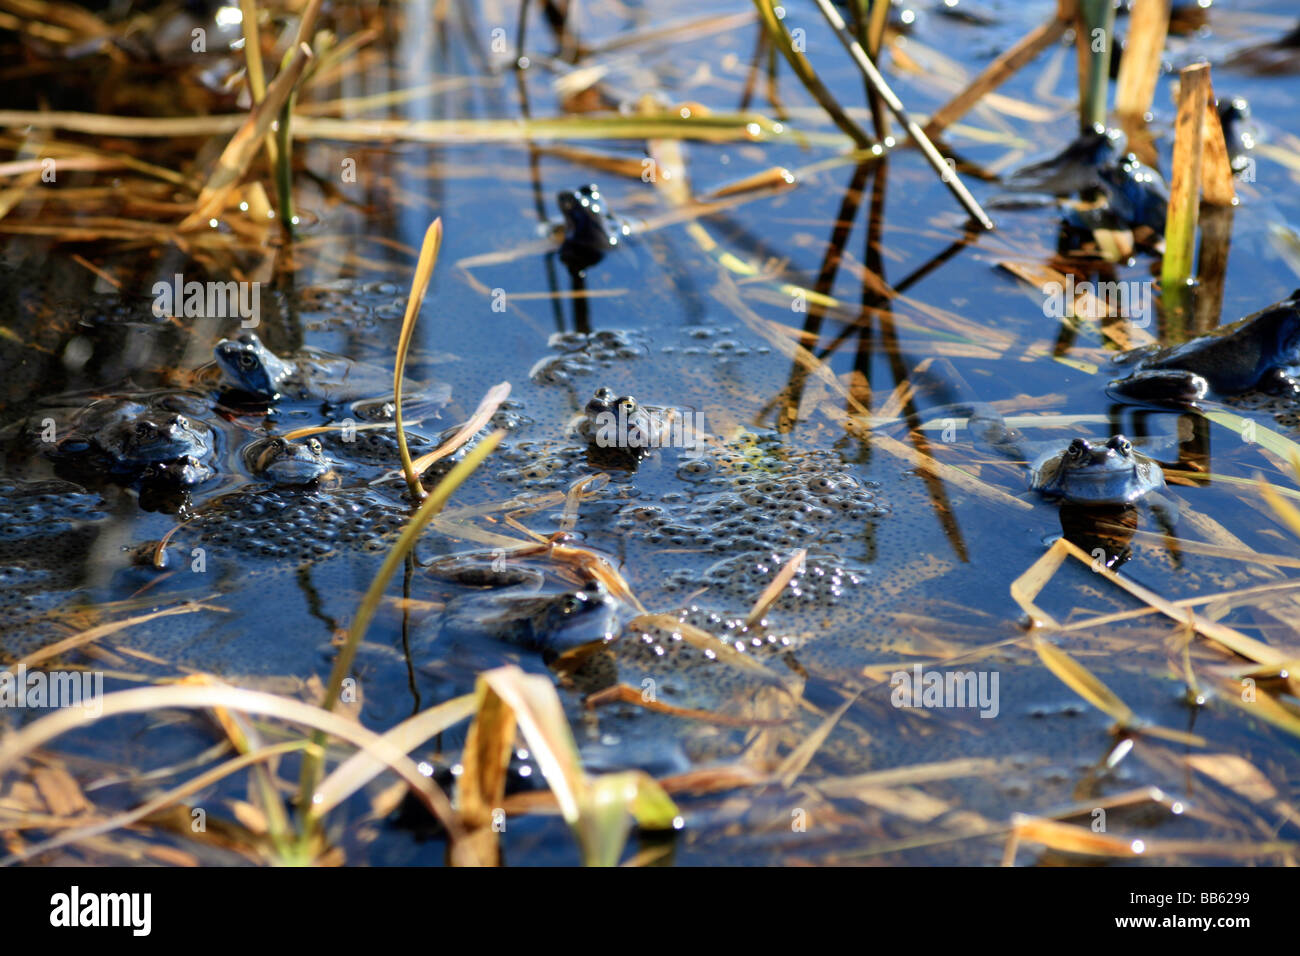 Frogs and frogspawn in the shallow water - Stock Image